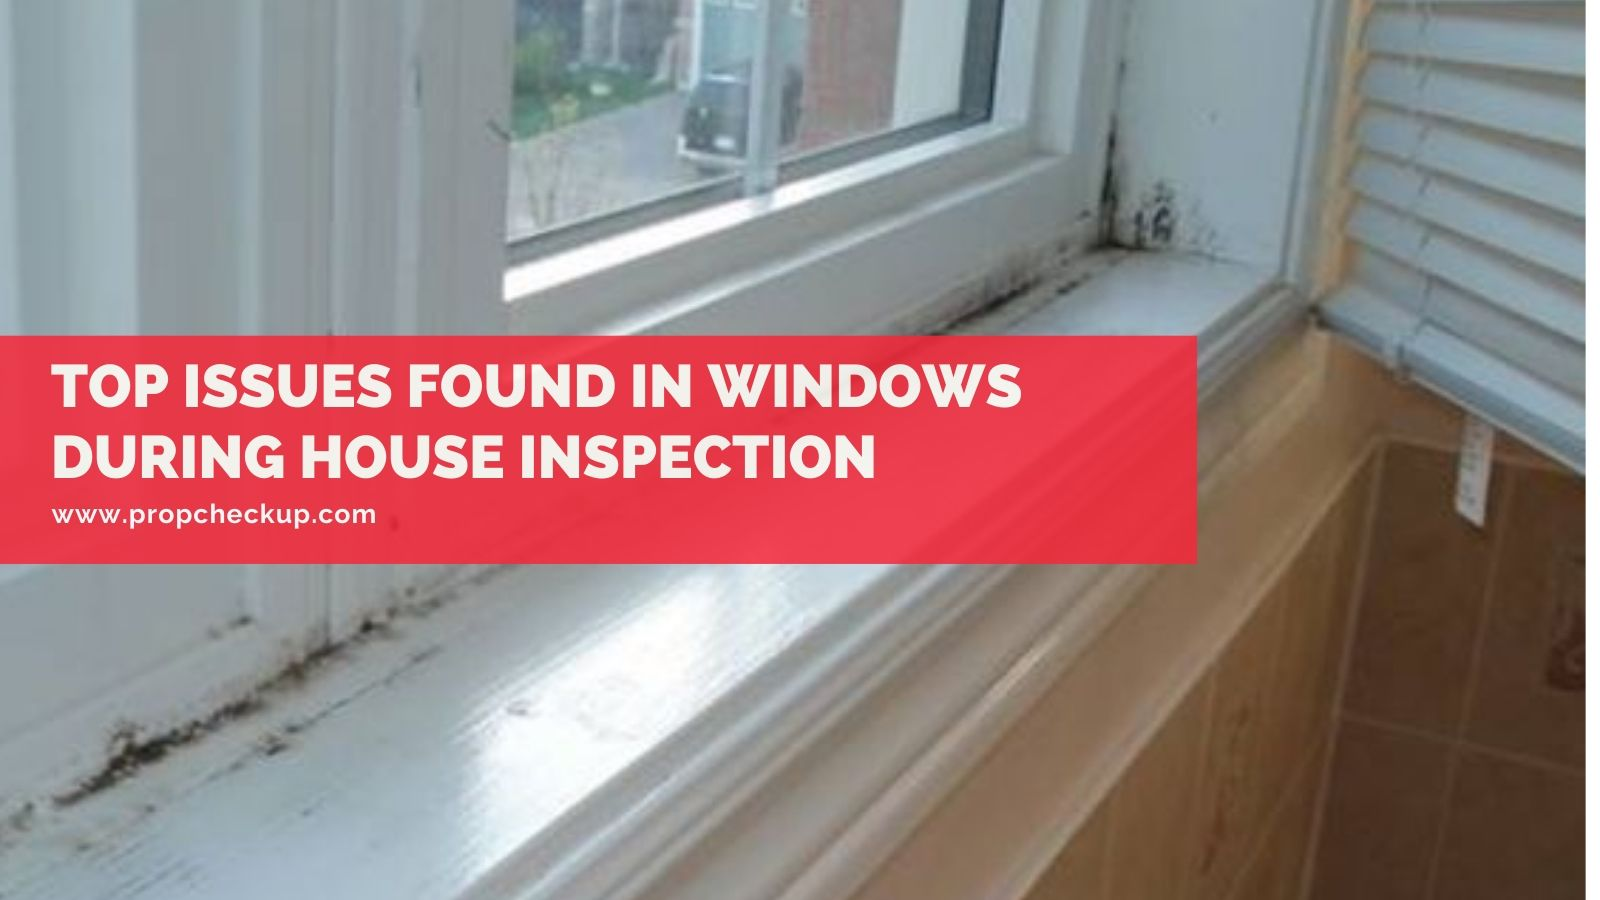 Top Issues Found in Windows During House Inspection